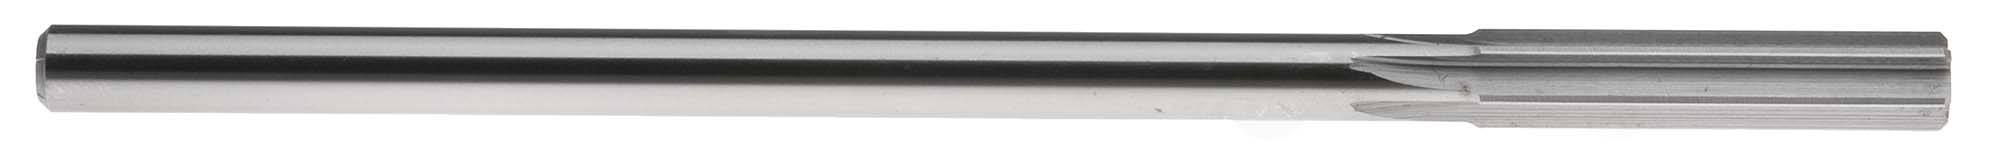 "#50 (.0700"") Straight Shank Chucking Reamer, Straight Flute, High Speed Steel"